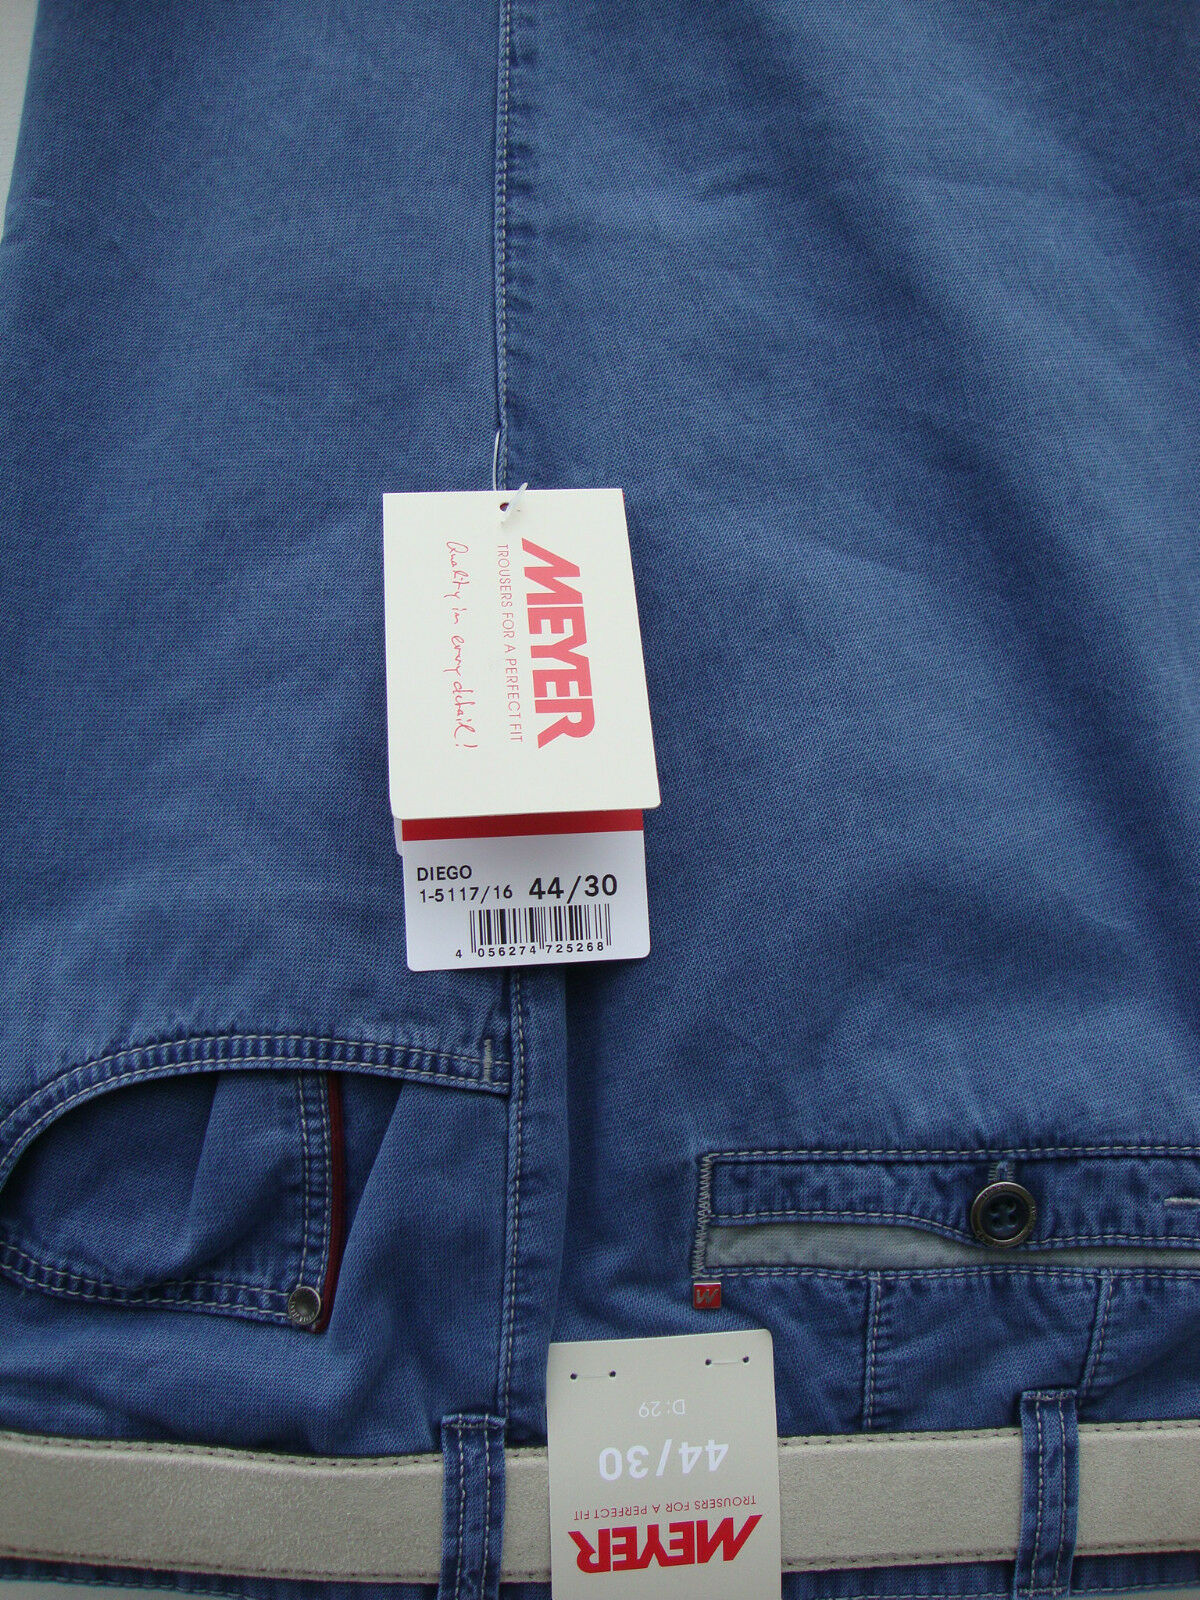 MEYER blueE DIEGO TROUSERS 42